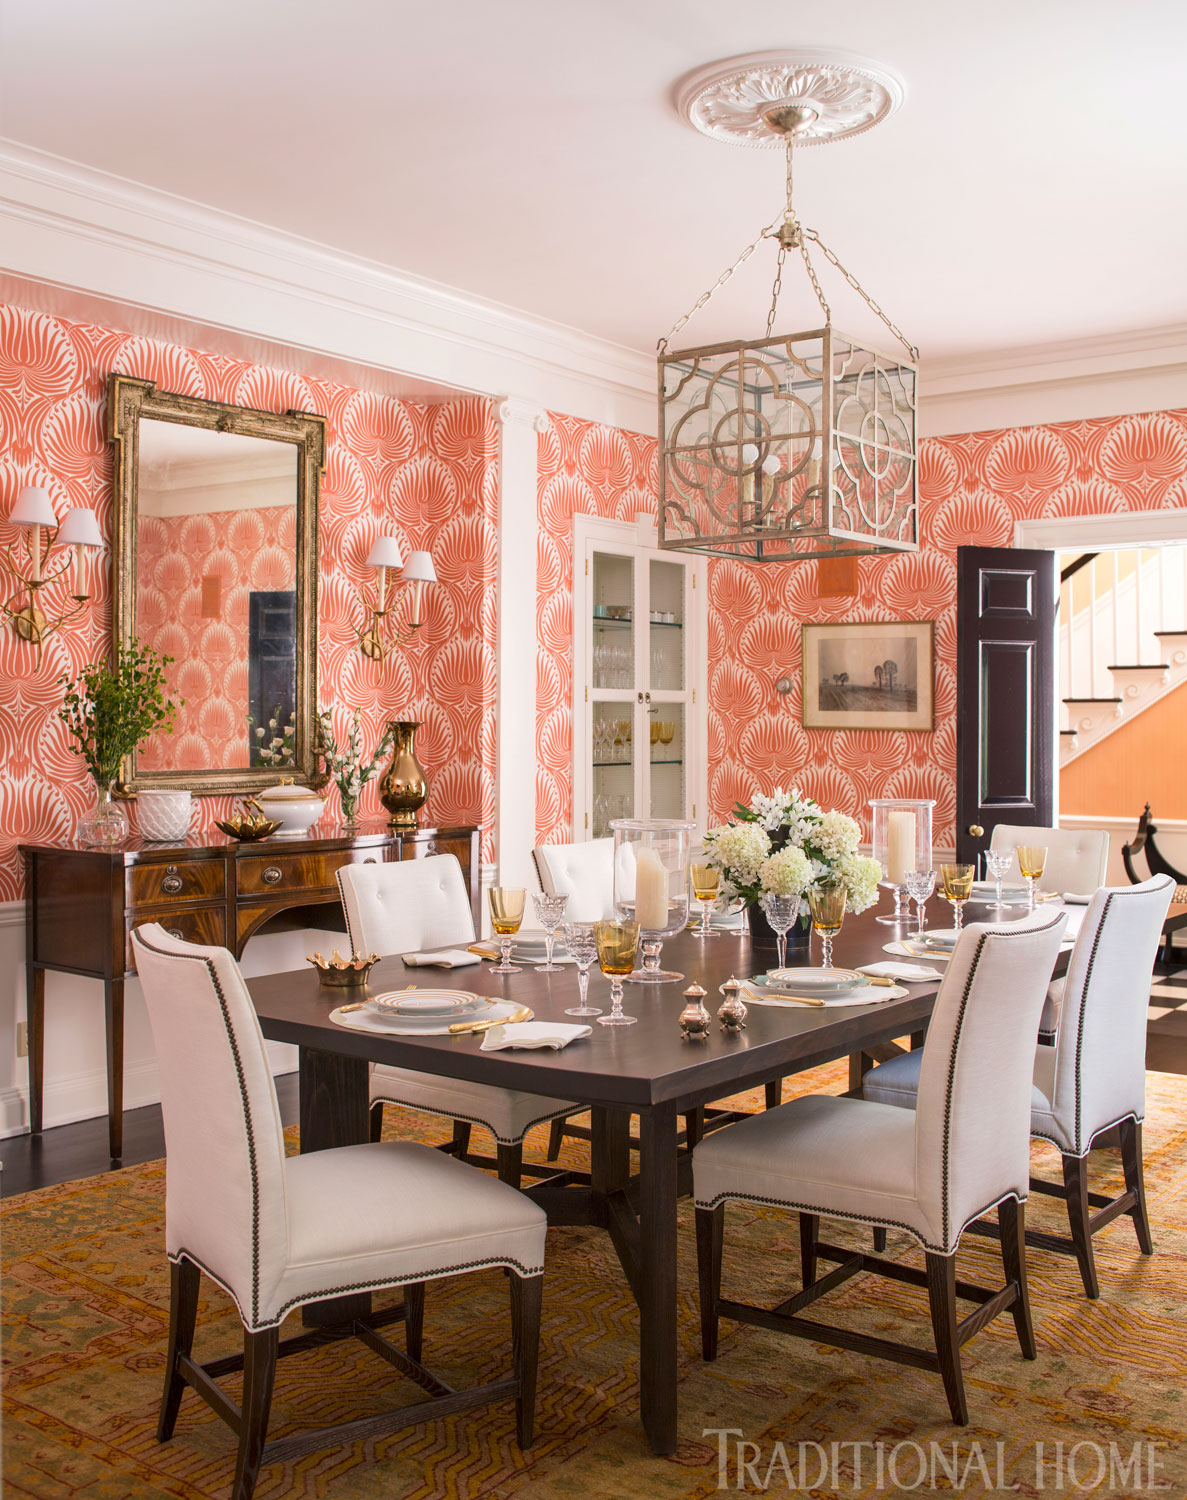 Coral wallpaper enlivens this dining room. Design by  Christina Murphy , Photo by  John Bessler , via  Traditional Home